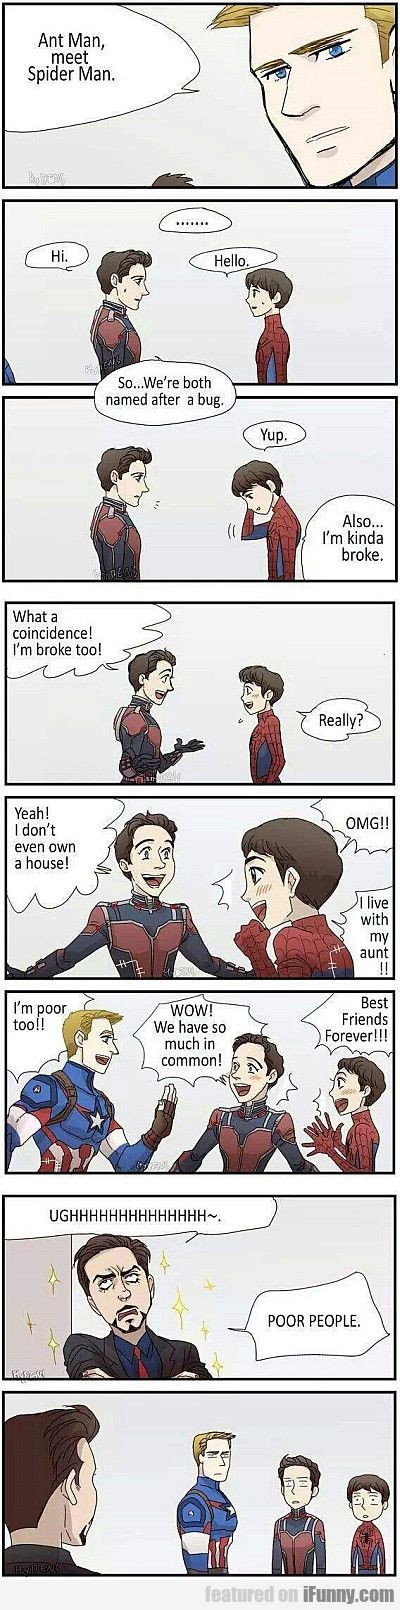 Ant Man, Meet Spider Man! #Funny-Pics http://www.flaproductions.net/funny-pics/ant-man-meet-spider-man/27042/?utm_source=PN&utm_medium=http%3A%2F%2Fwww.pinterest.com%2Falliefernandez3%2Fgreat%2F&utm_campaign=FlaProductions